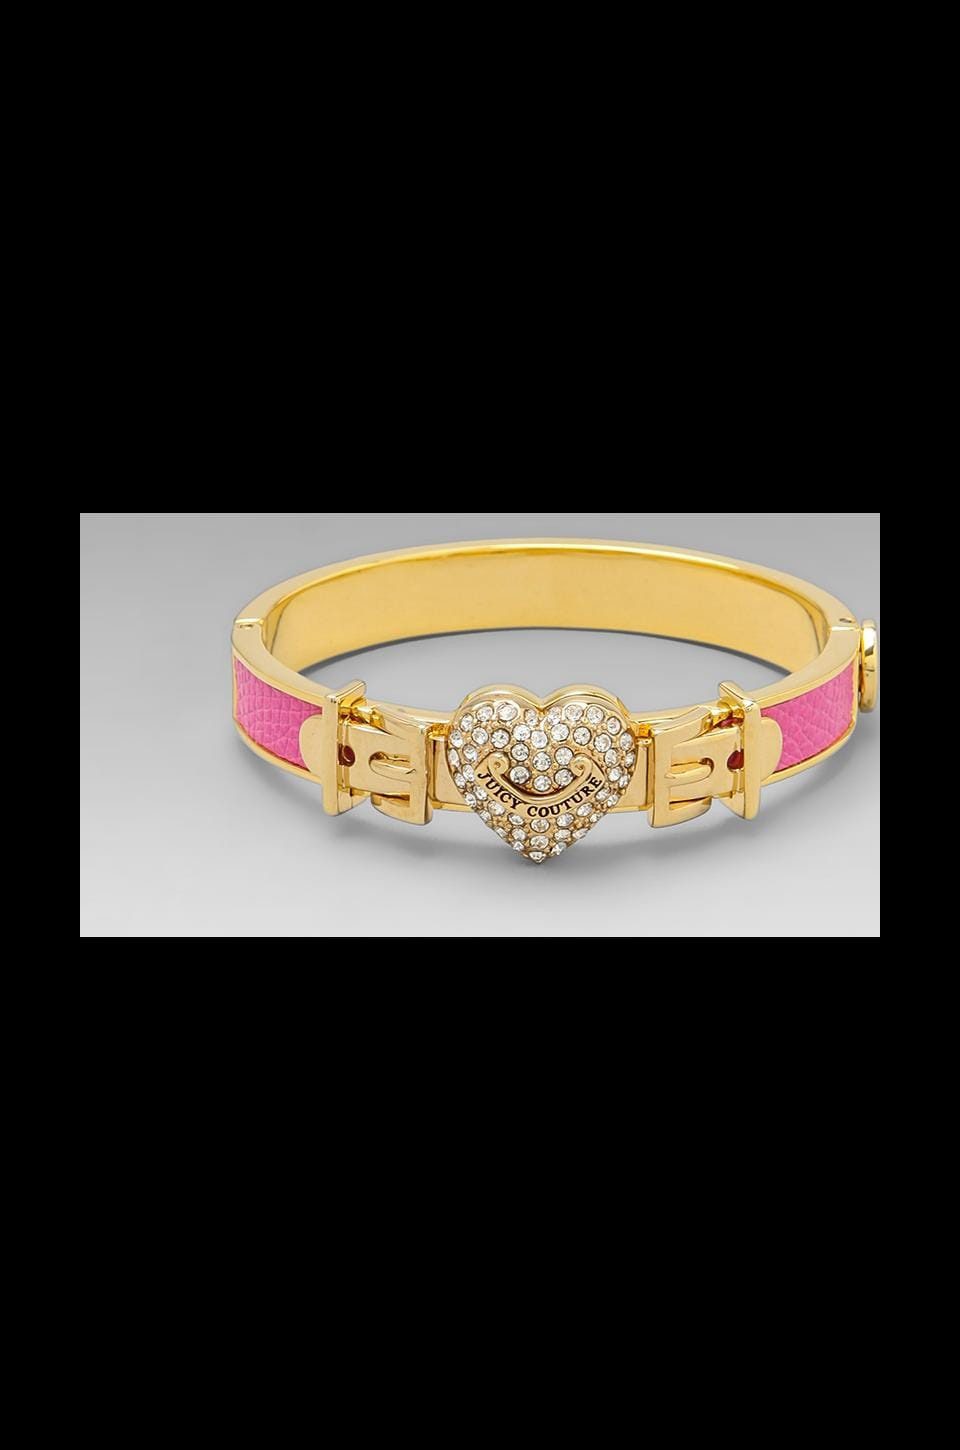 Juicy Couture Pave Heart Leather Bangle in Passion Pink